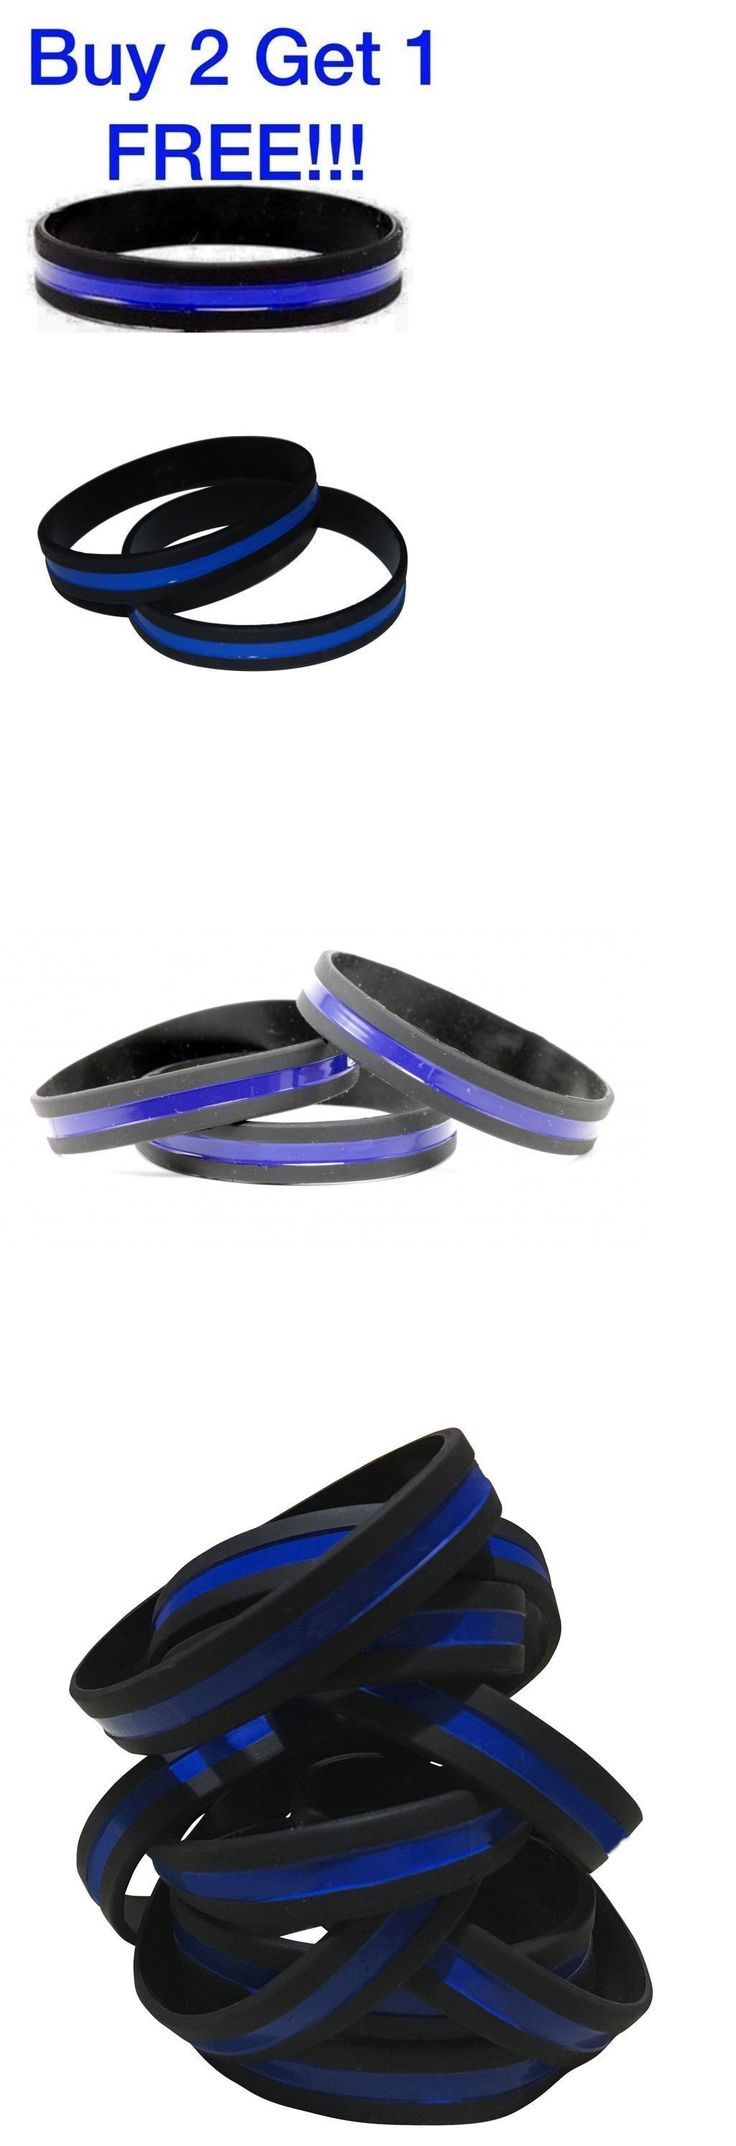 Wristbands 112603: Thin Blue Line Bracelet Wrist Band (1) Silicone Police Support Wristband Cop K-9 -> BUY IT NOW ONLY: $249.95 on eBay!